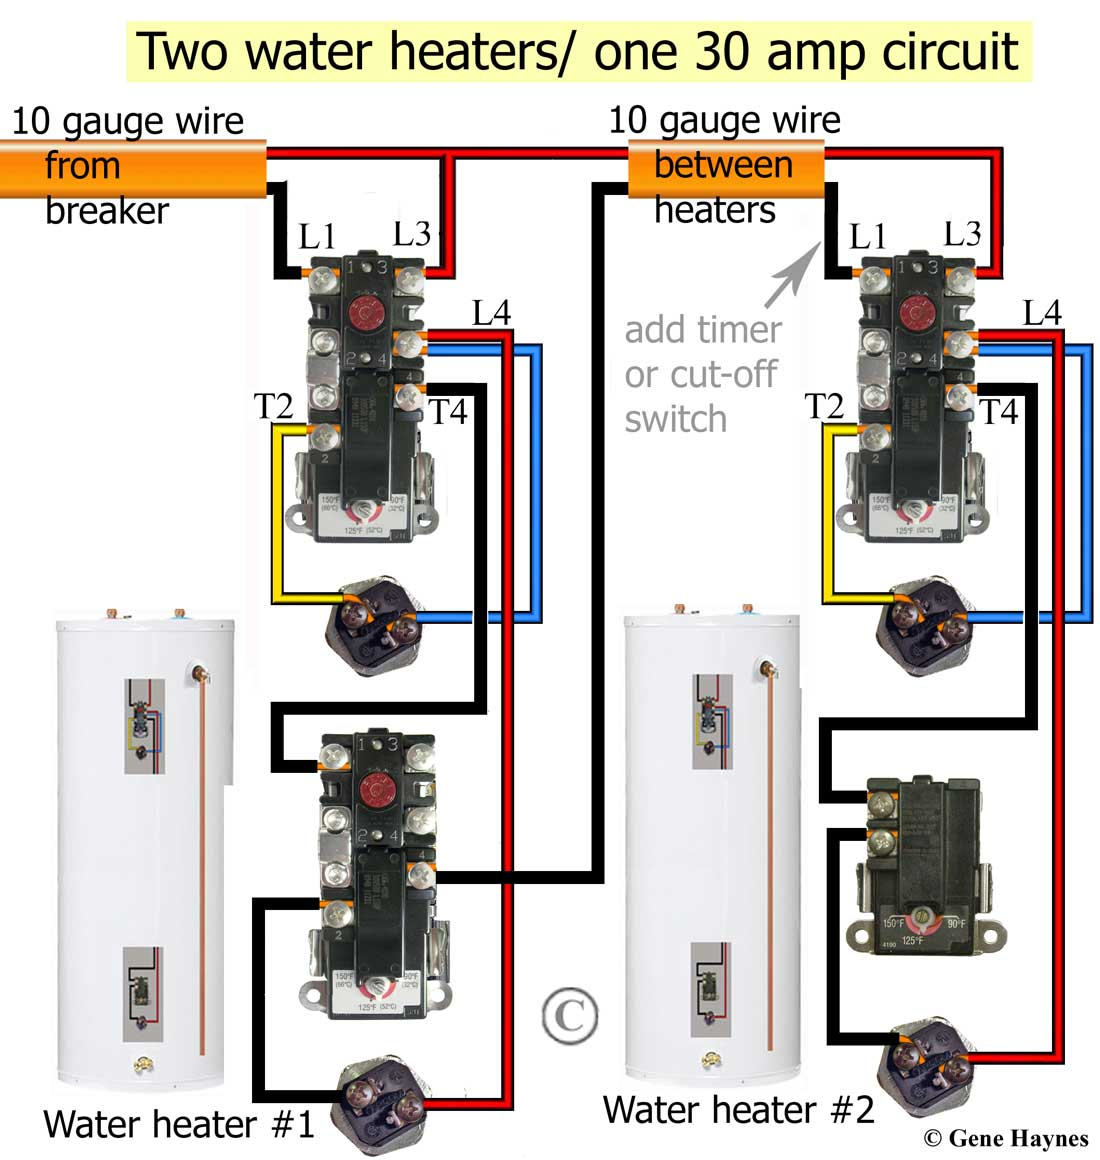 How To Wire Water Heater Thermostats Stat Wiring Diagram Larger Image Non Simultaneous Control 2 Heaters Will Heat Top Of Tank First Redundant Turn On As Soon Cold